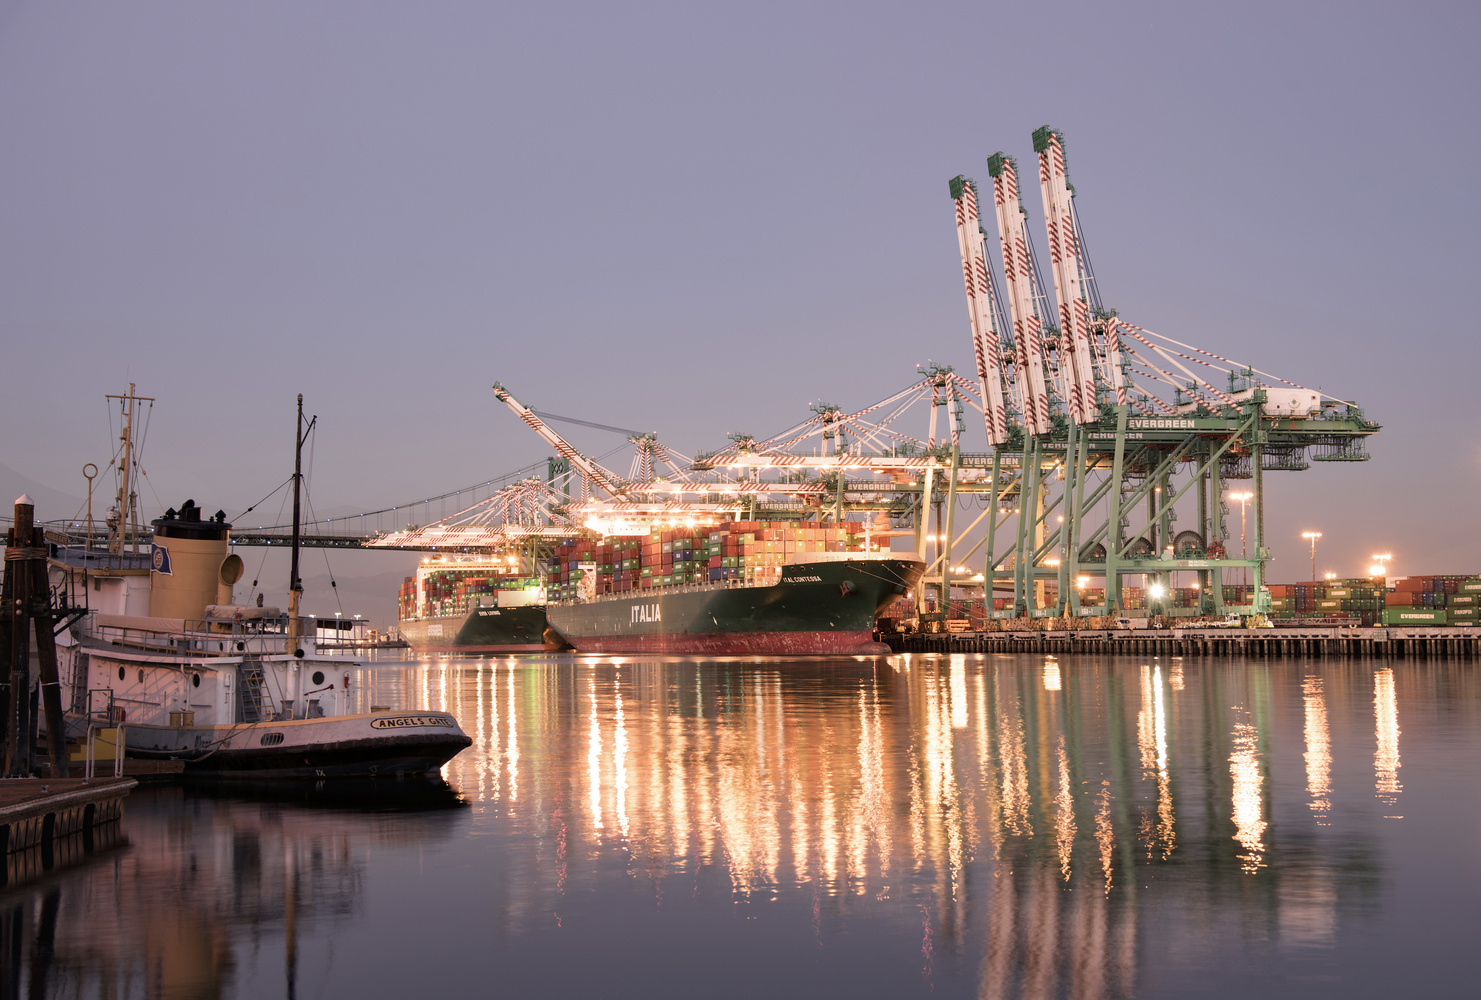 Sunset over the Port of Los Angeles by Richard Mager